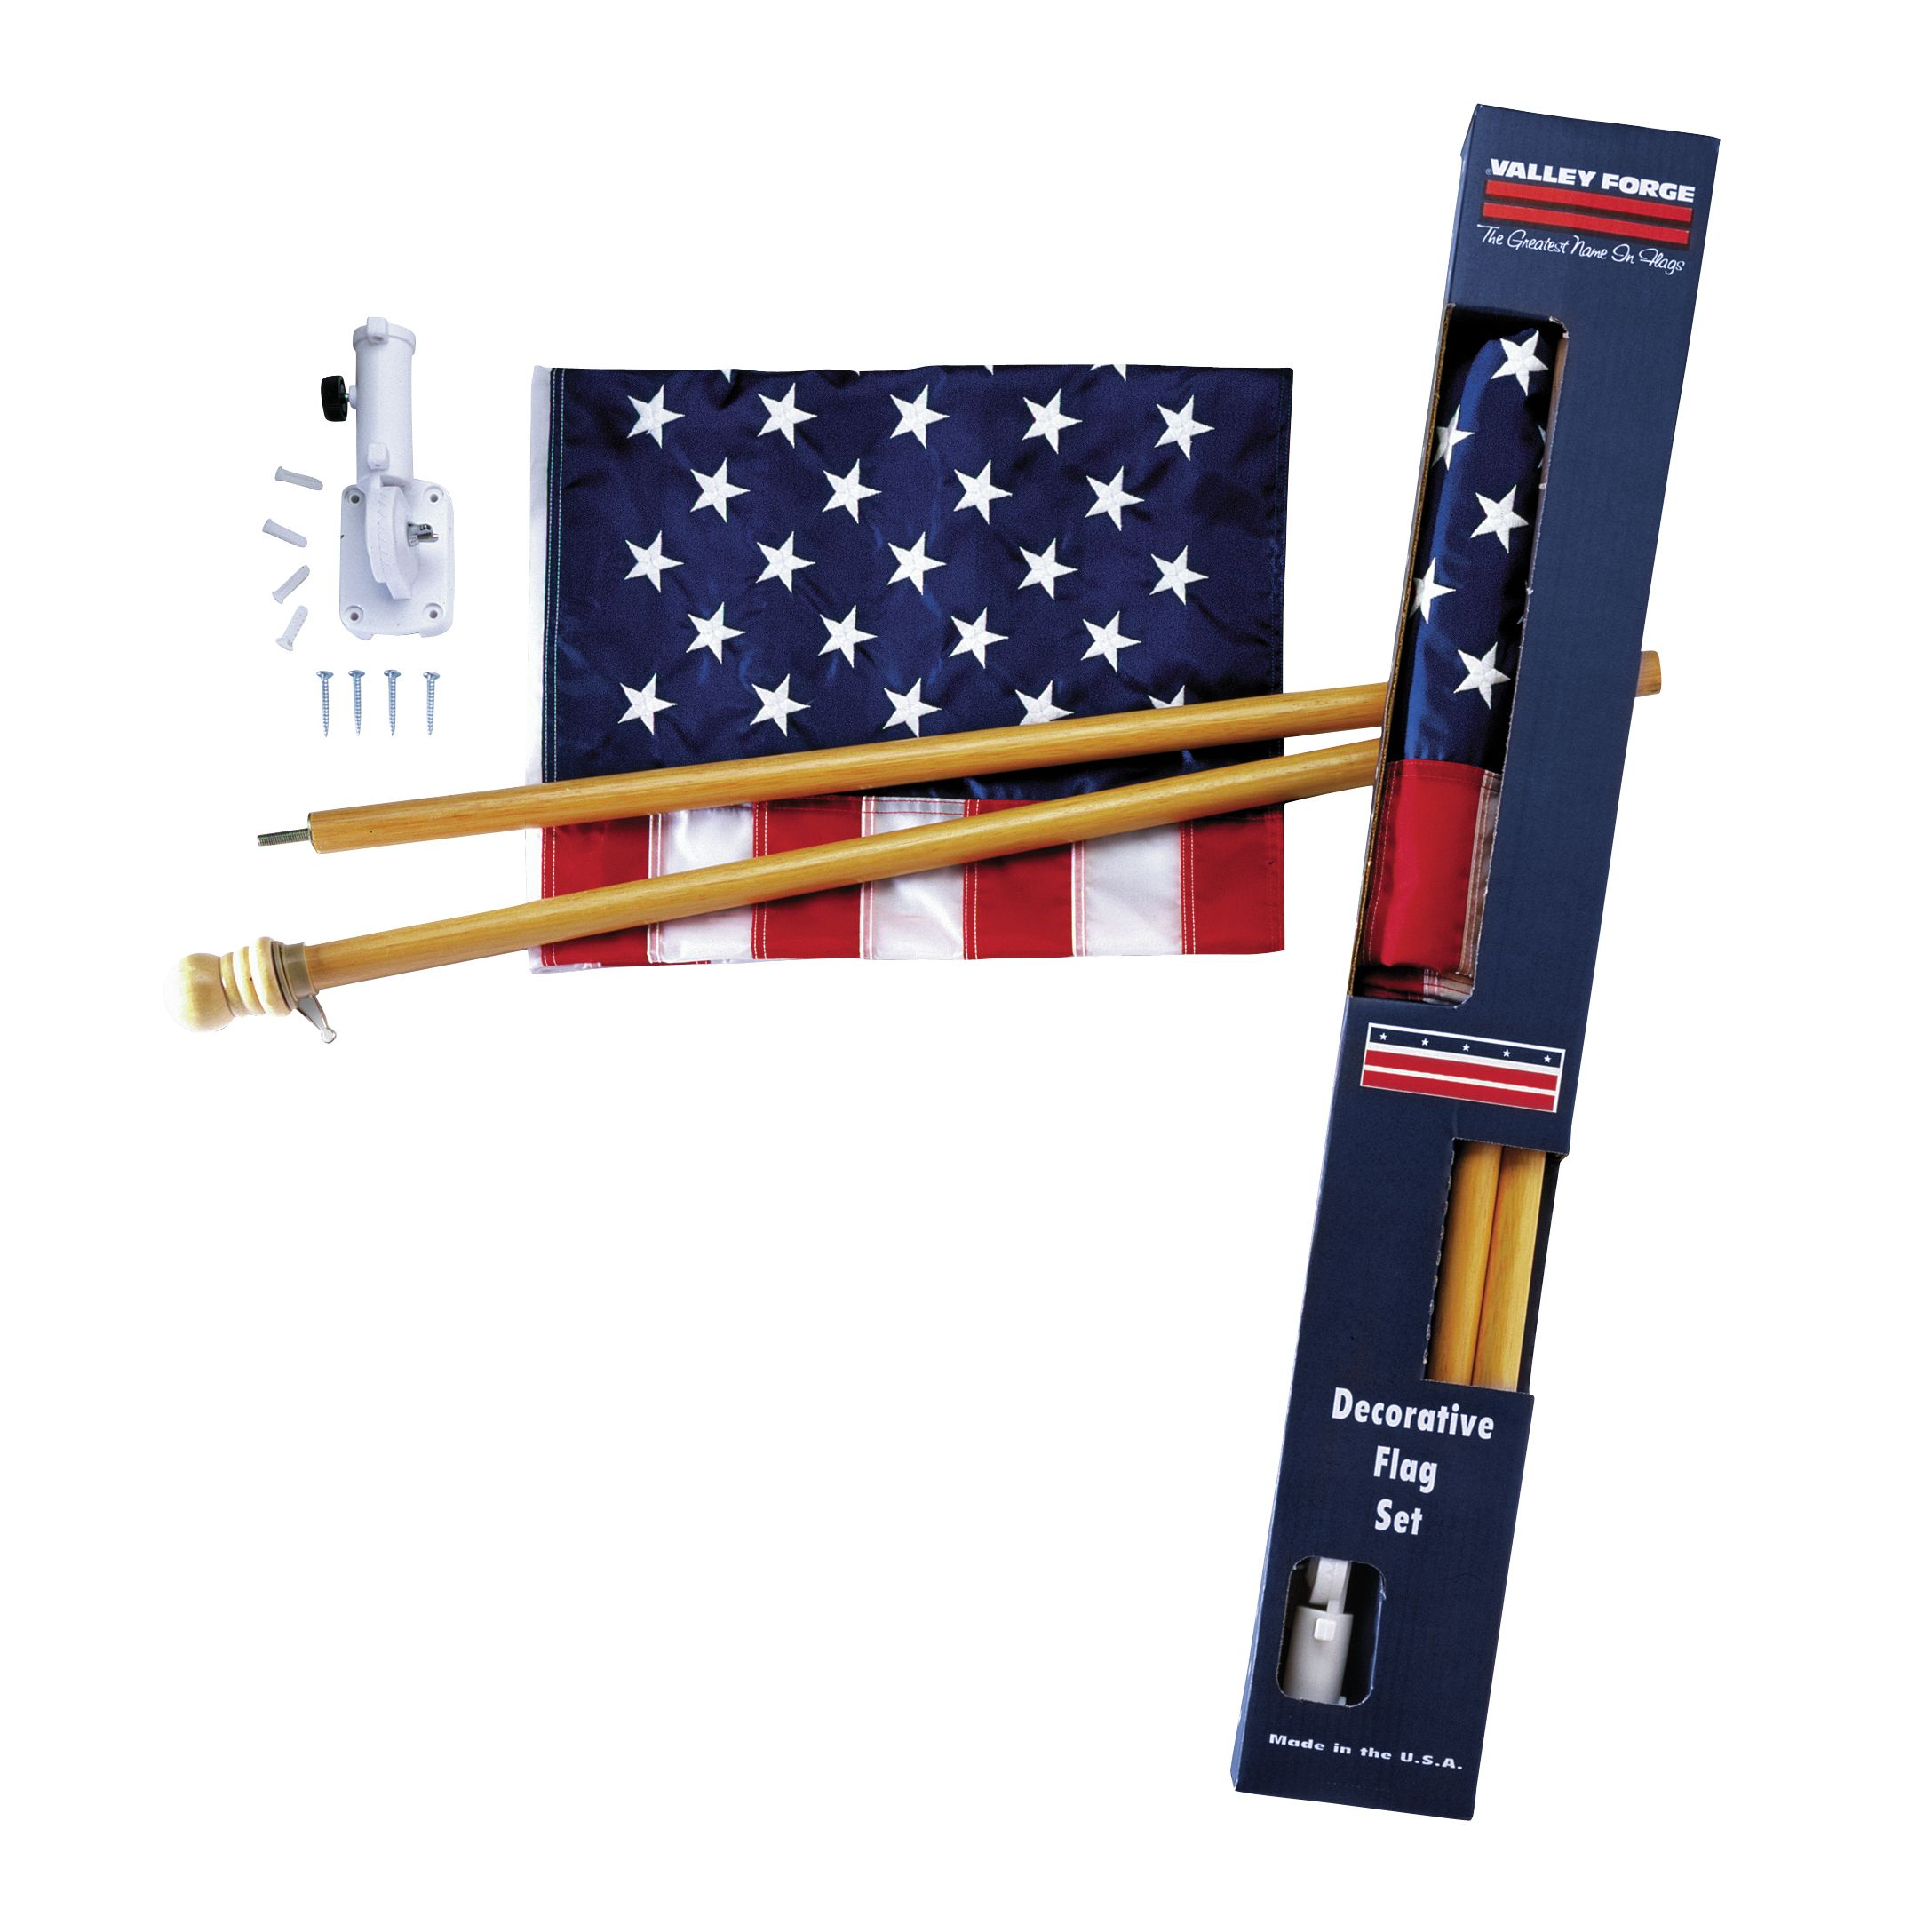 Image of Valley Forge Flag 2.5 ft. x 4 ft. Boxed U.S. Flag Set with Wood Pole